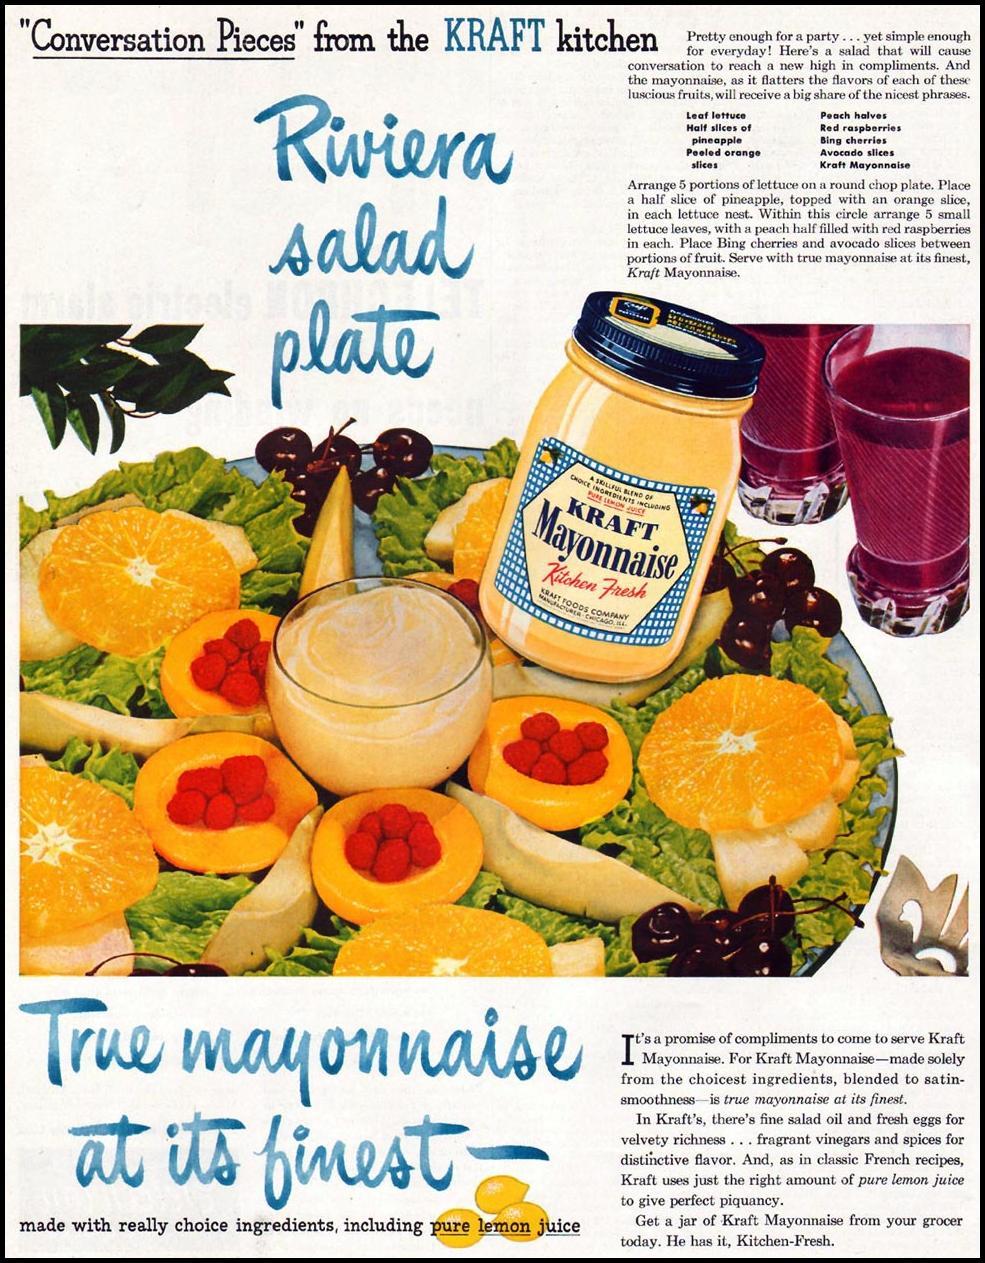 KRAFTMAYONNAISE LADIES' HOME JOURNAL 07/01/1949 p. 102